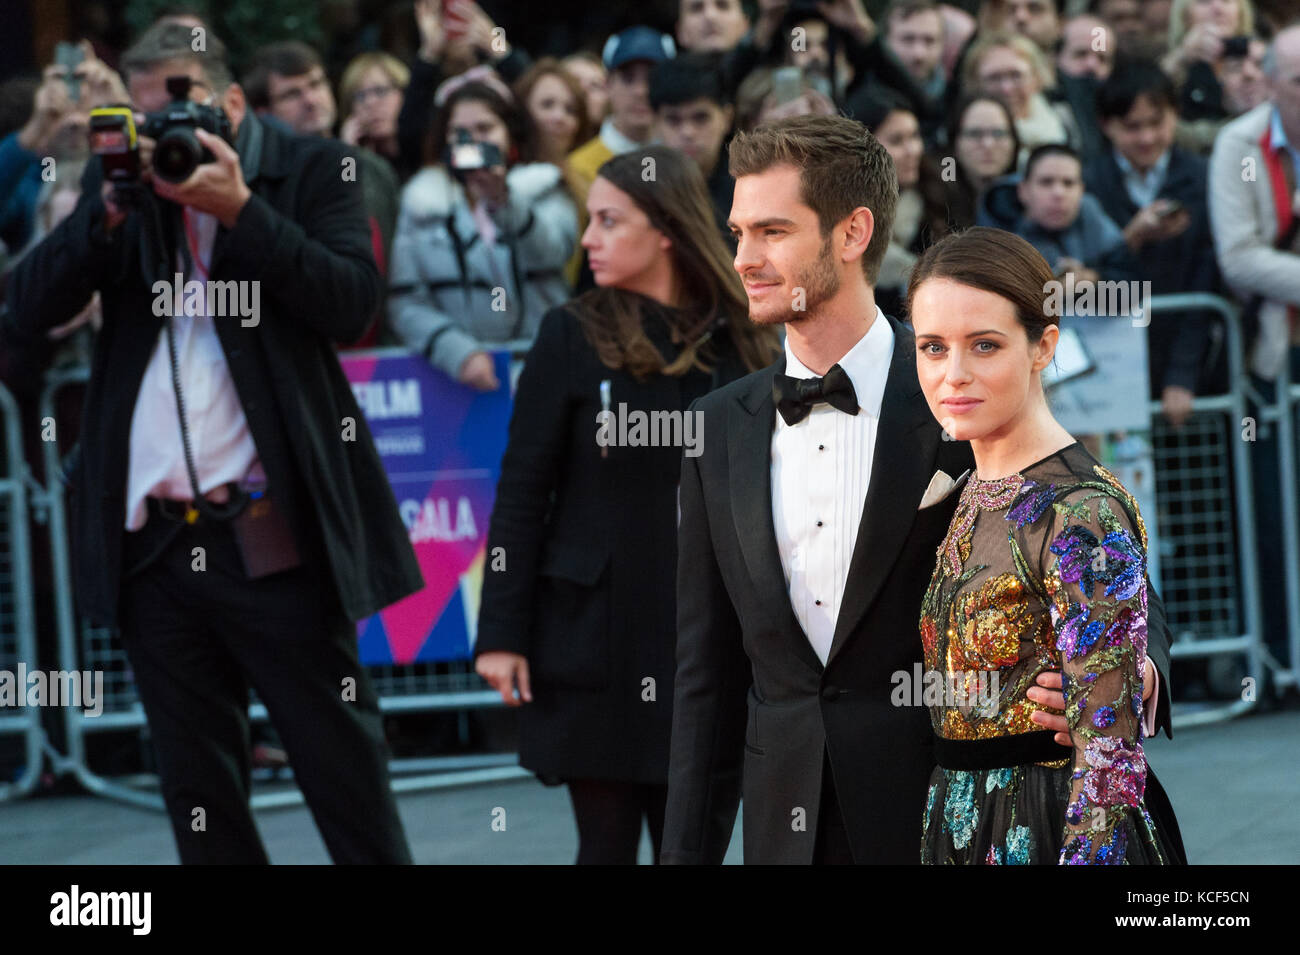 London, UK. 4th October 2017. Claire Foy and Andrew Garfield arrive for the UK film premiere of Breathe at Odeon Stock Photo